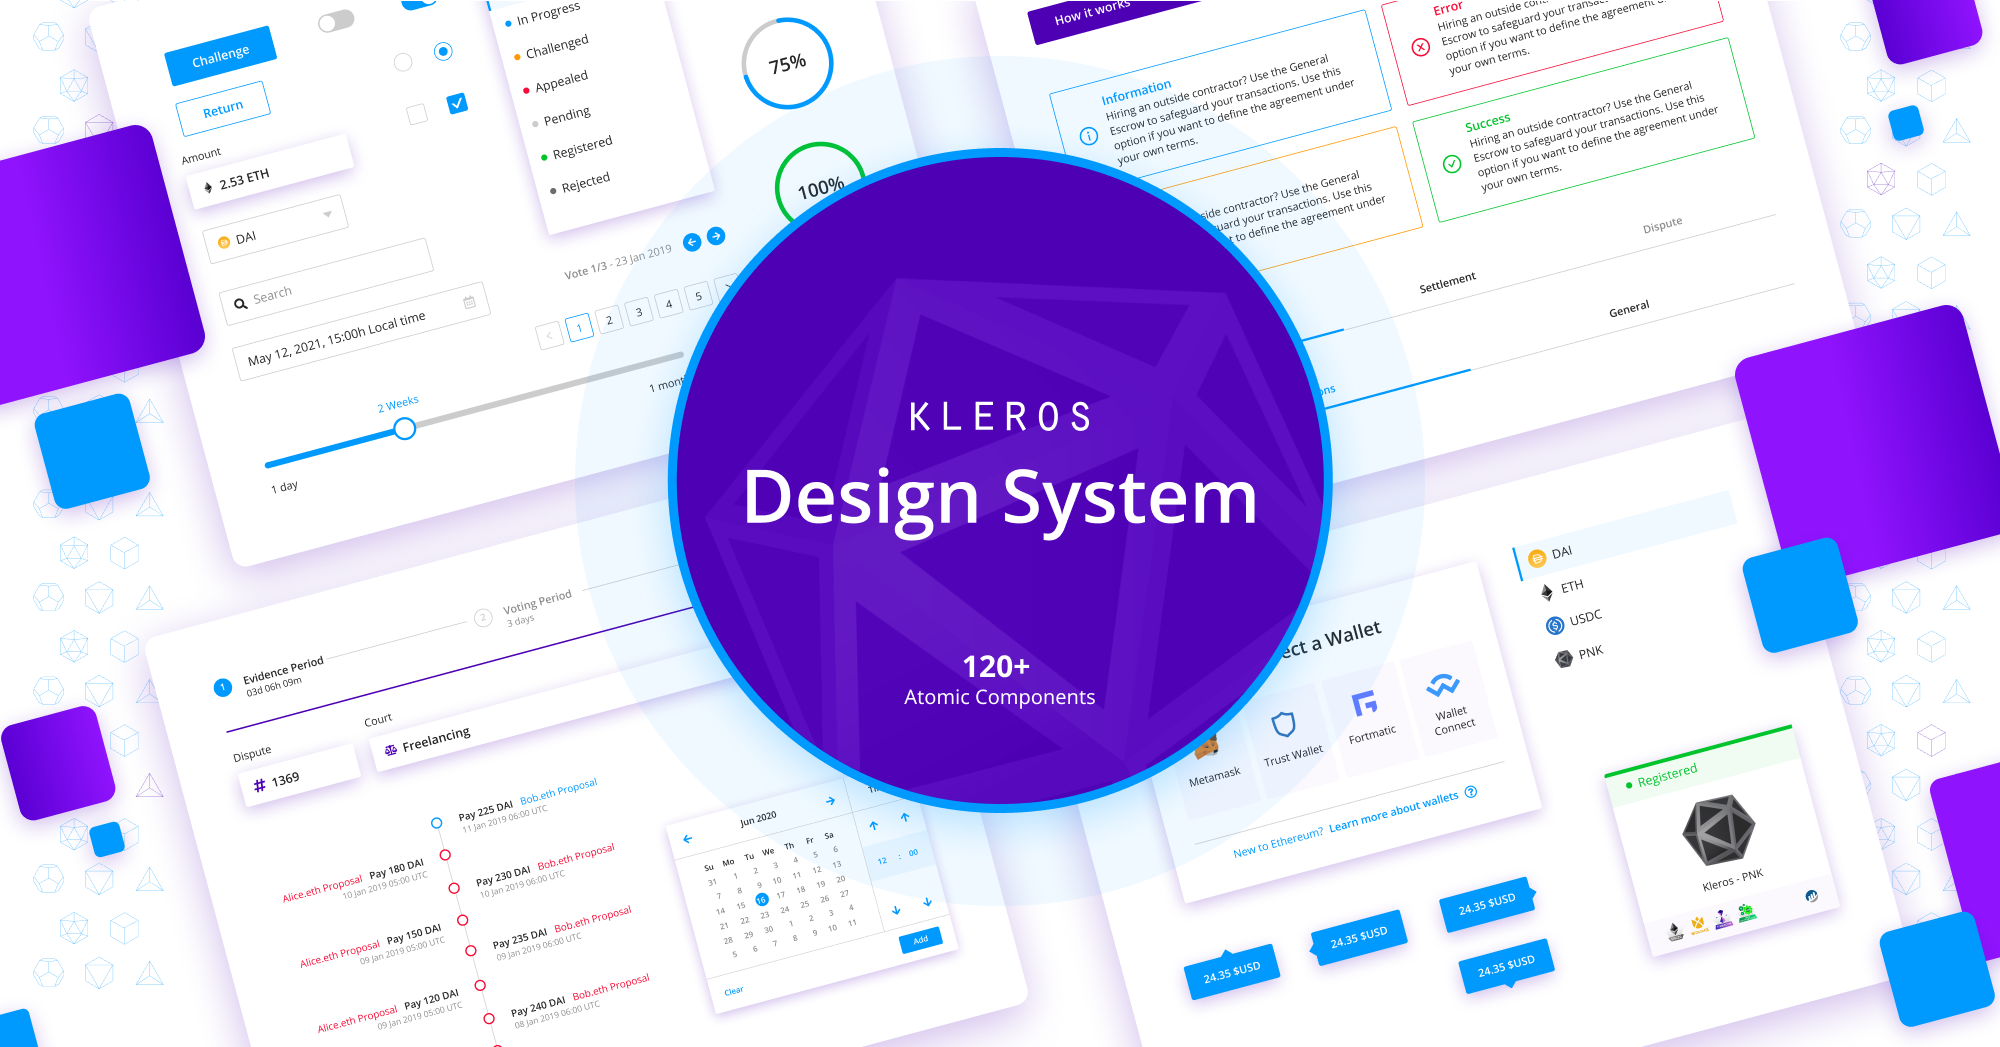 The Kleros Design System, Part 1: The Principles, Structure, and UI Library